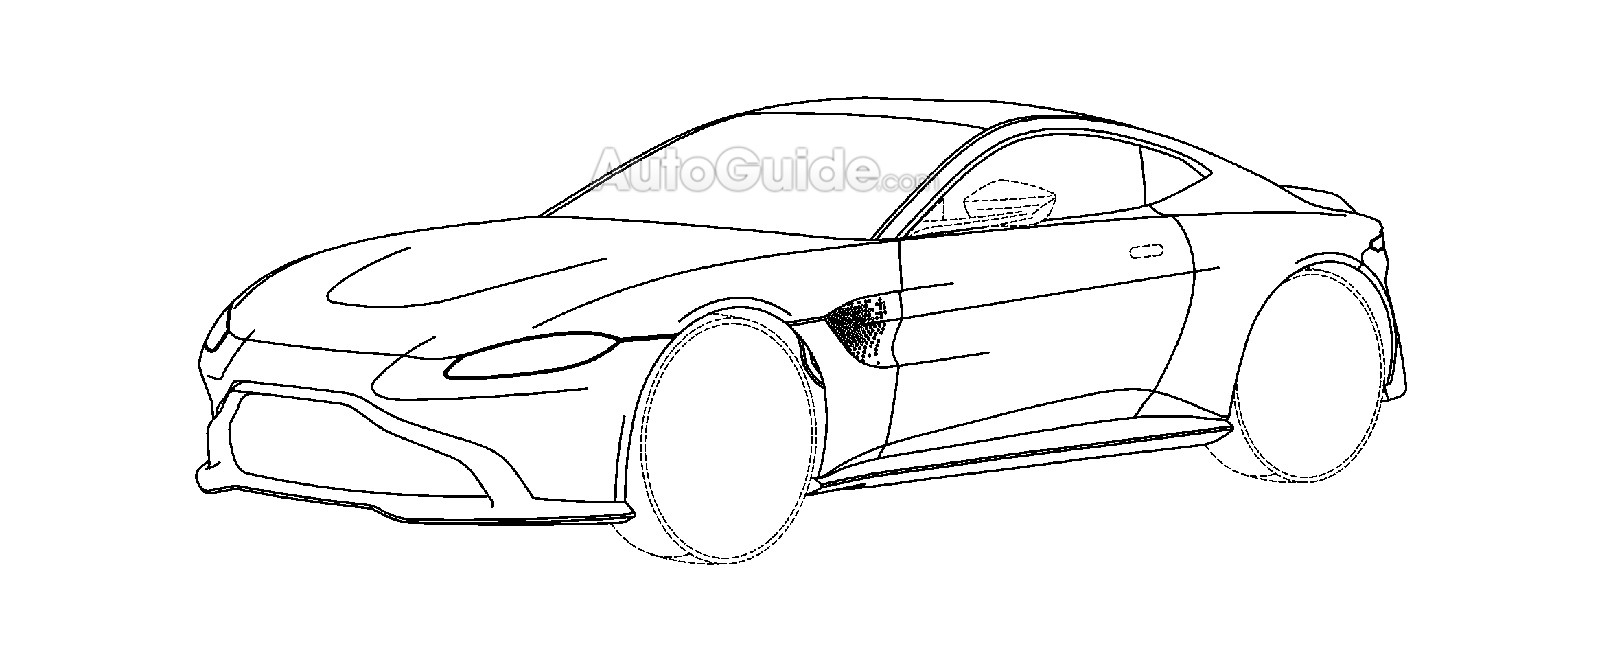 Patent Drawings Reveal Possible Design Of 2018 Aston